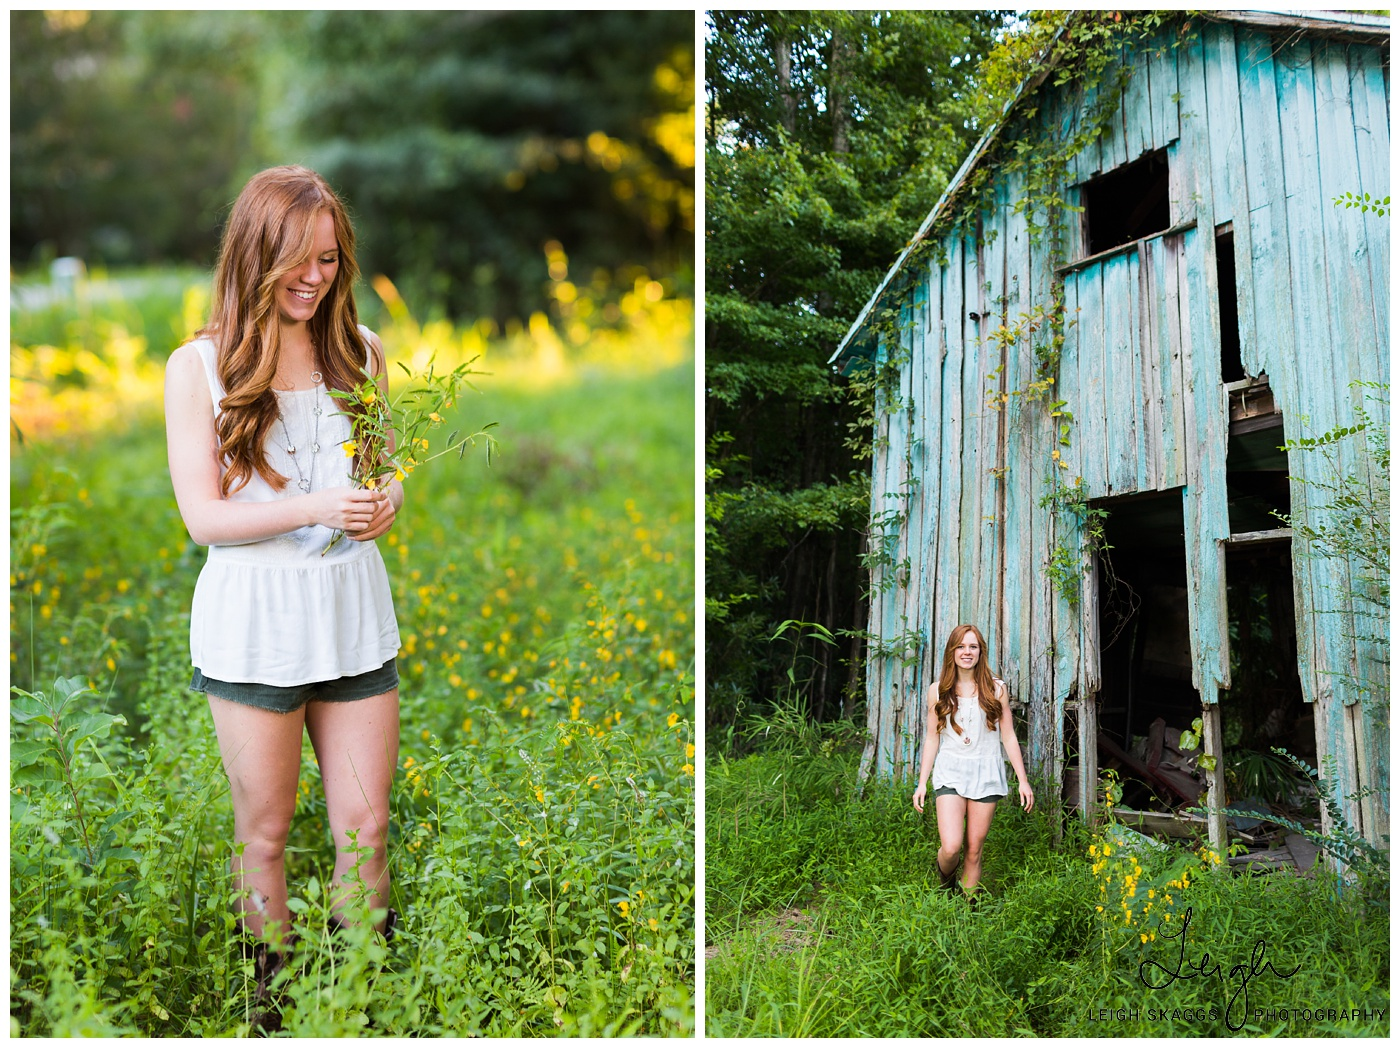 Savannah | Senior Portrait